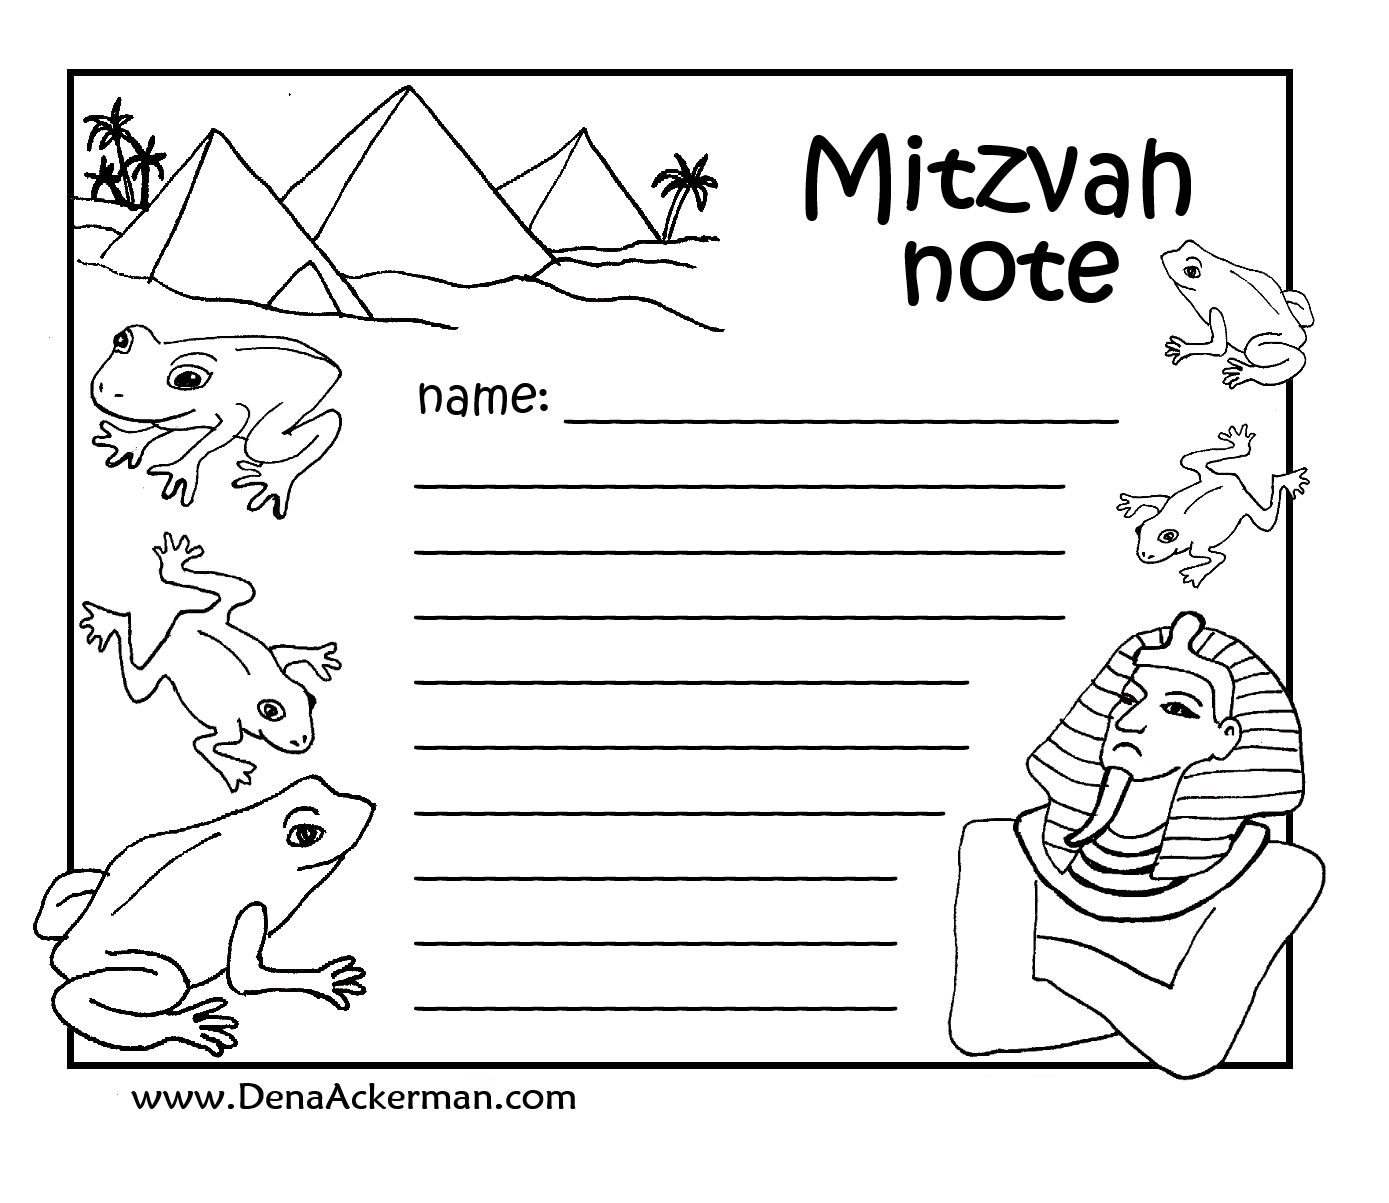 Passover Mitzvah Notes For Kids Pesach Coloring Page Picture Http Issuu Com Jcreatemag Docs Issue05 March2014 3 Learn Hebrew Jewish Crafts Bible Worksheets [ 1203 x 1389 Pixel ]